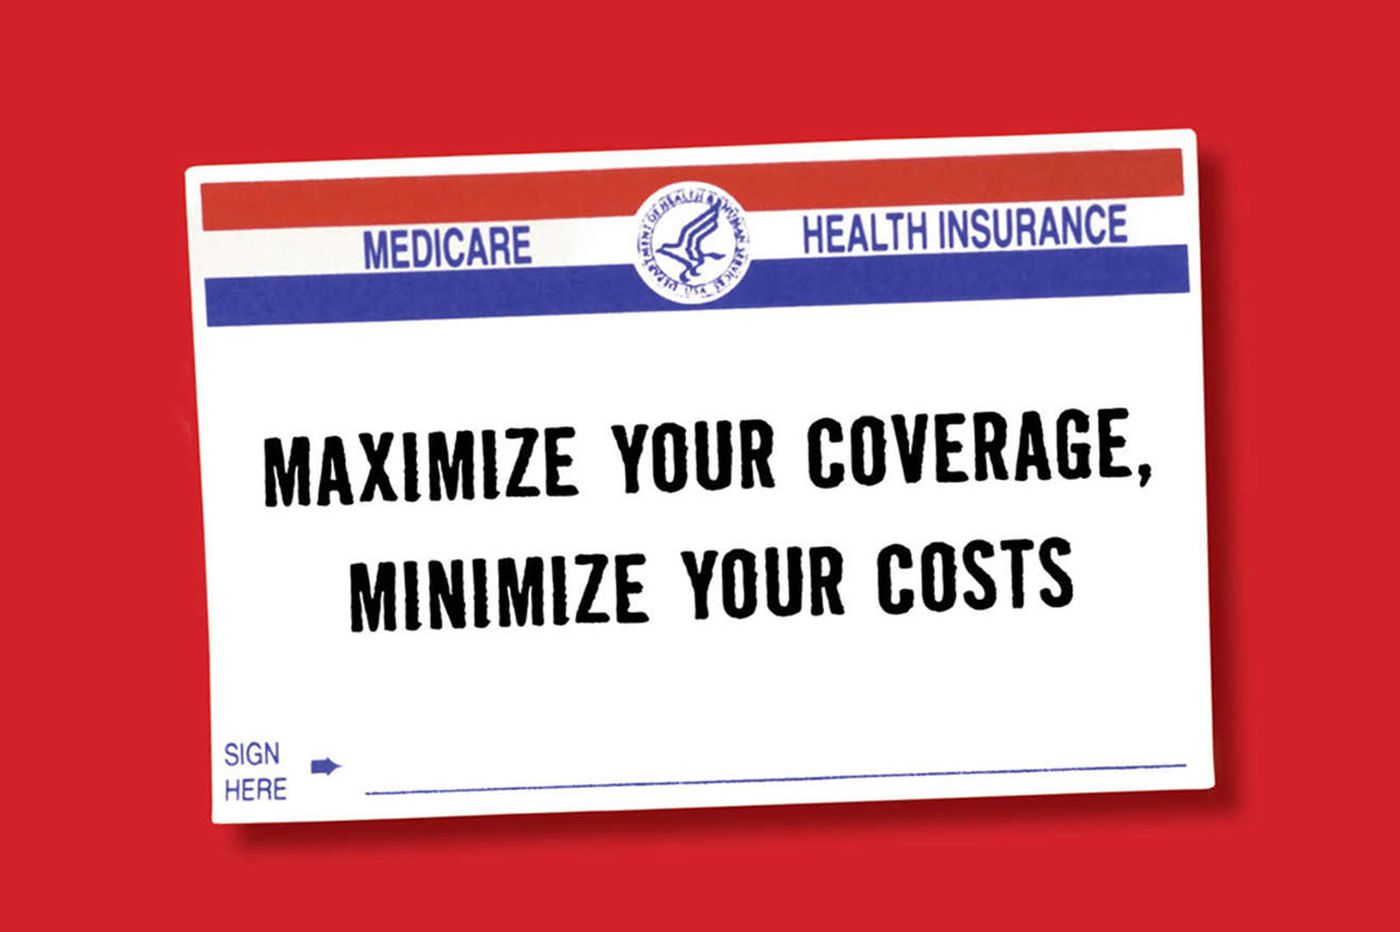 5 ways consumers can save on Medicare during open enrollment